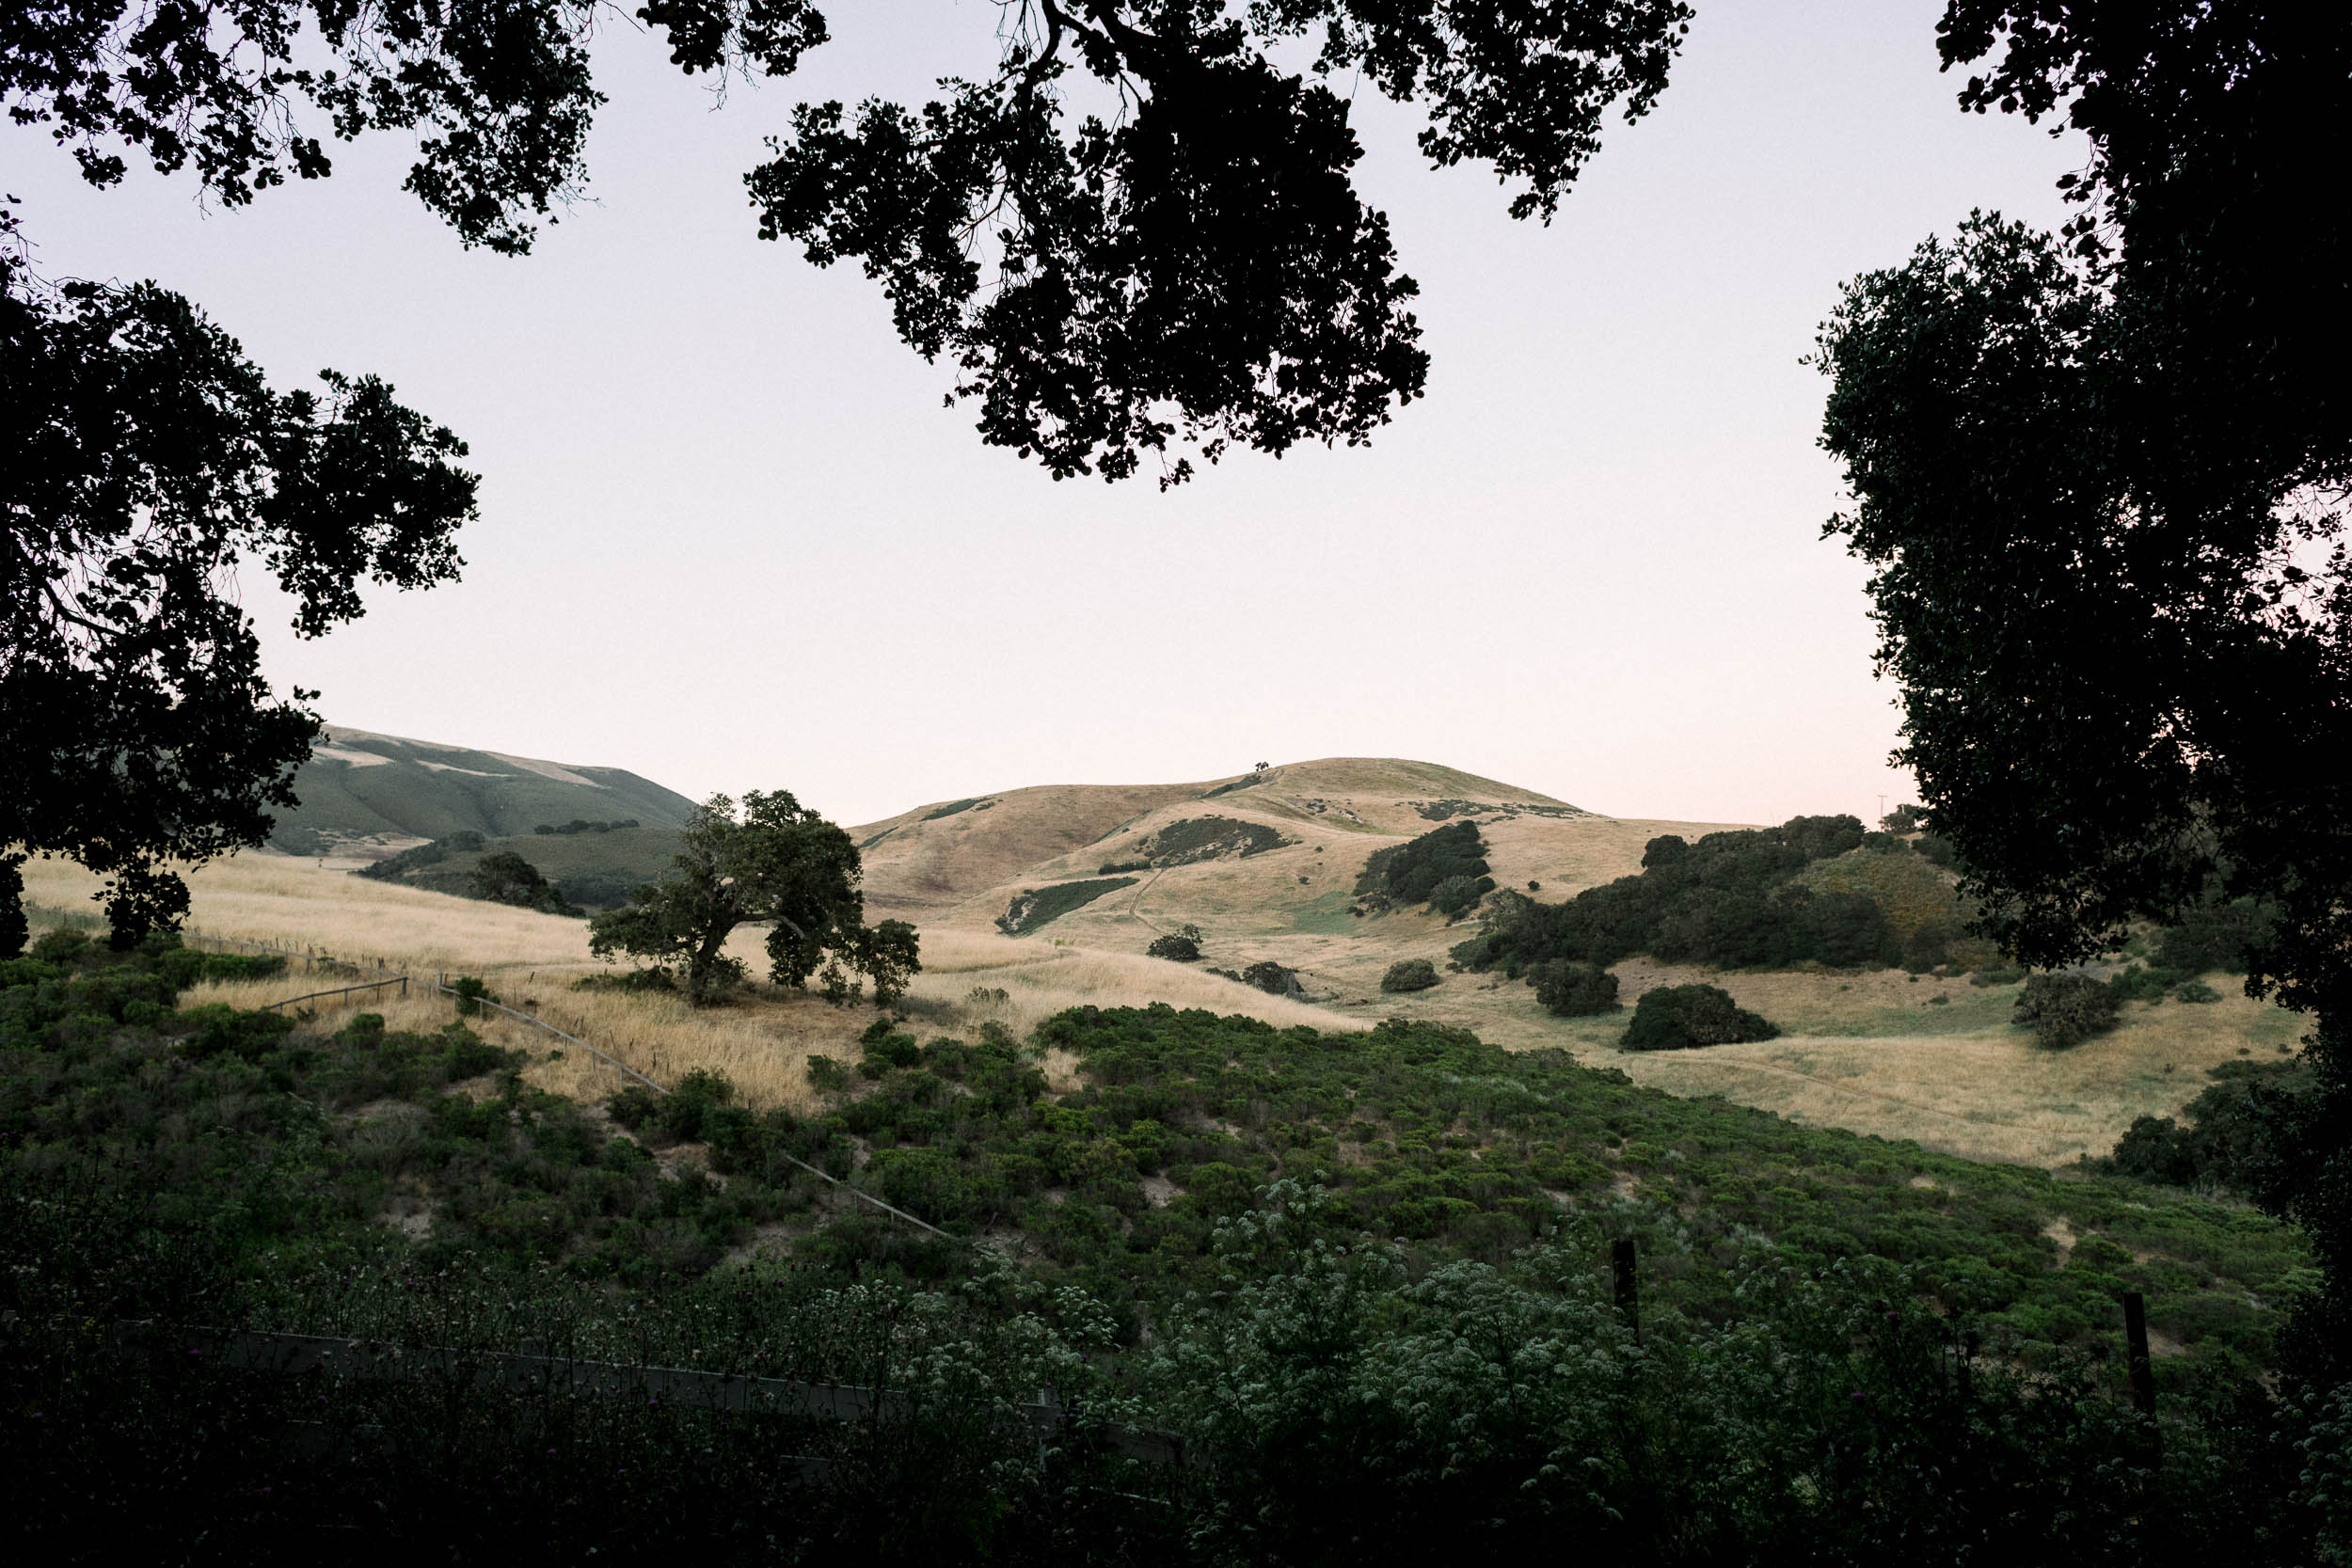 C+D_Holman Ranch Wedding_Carmel Valley_Buena Lane Photography_060619_ER933.jpg